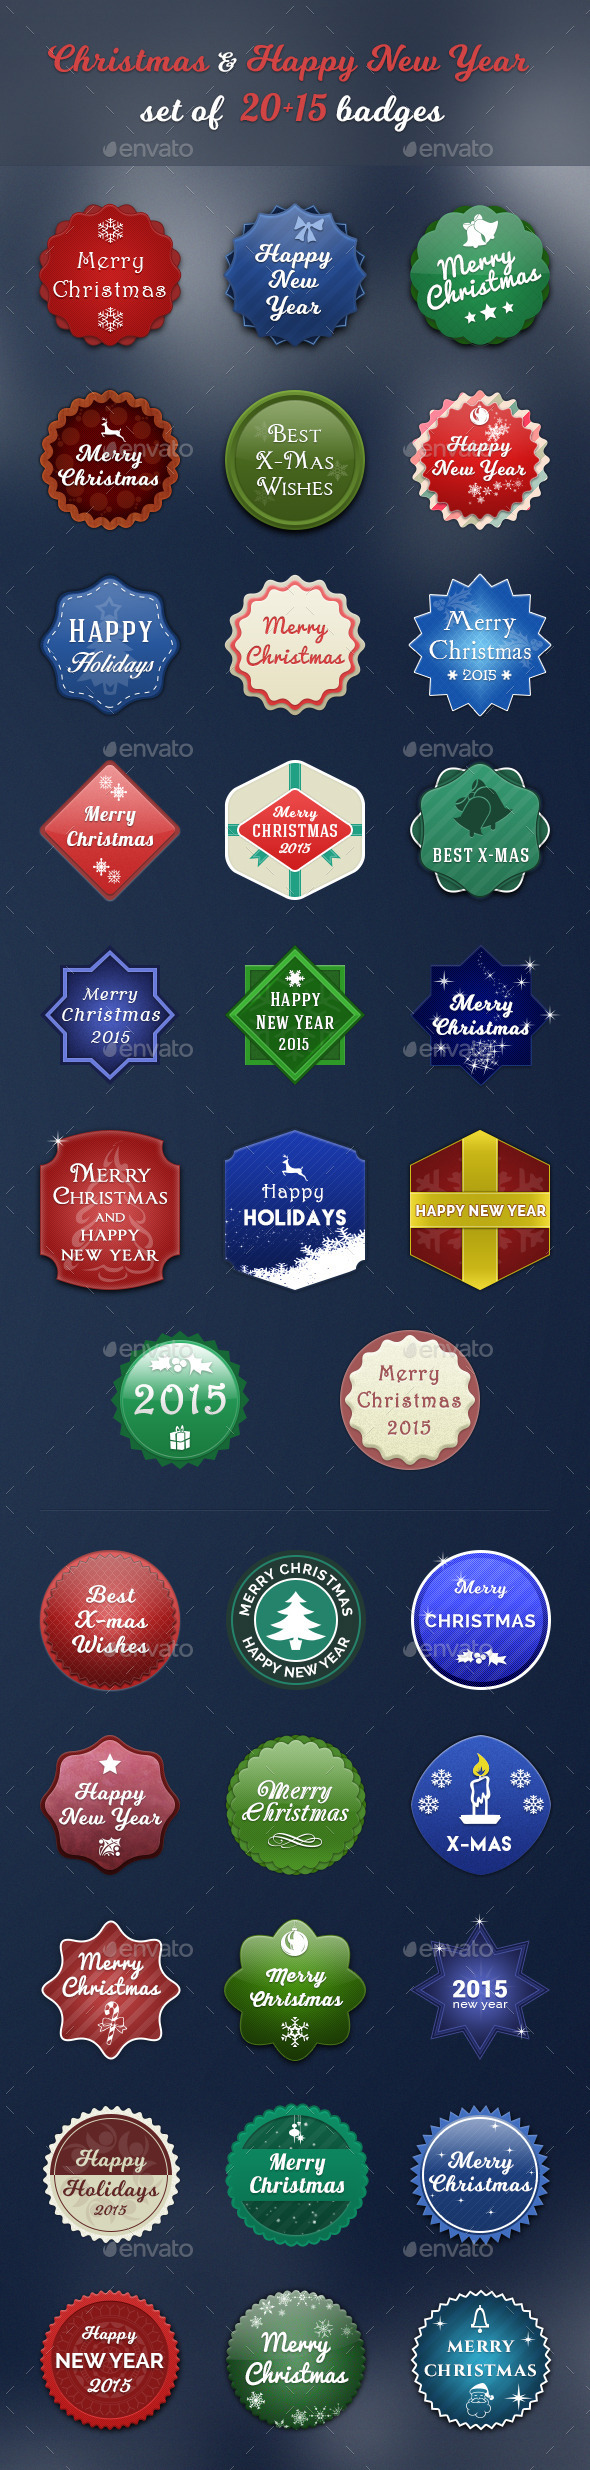 GraphicRiver Christmas & Happy New Year set of 20&15 badges 9827454